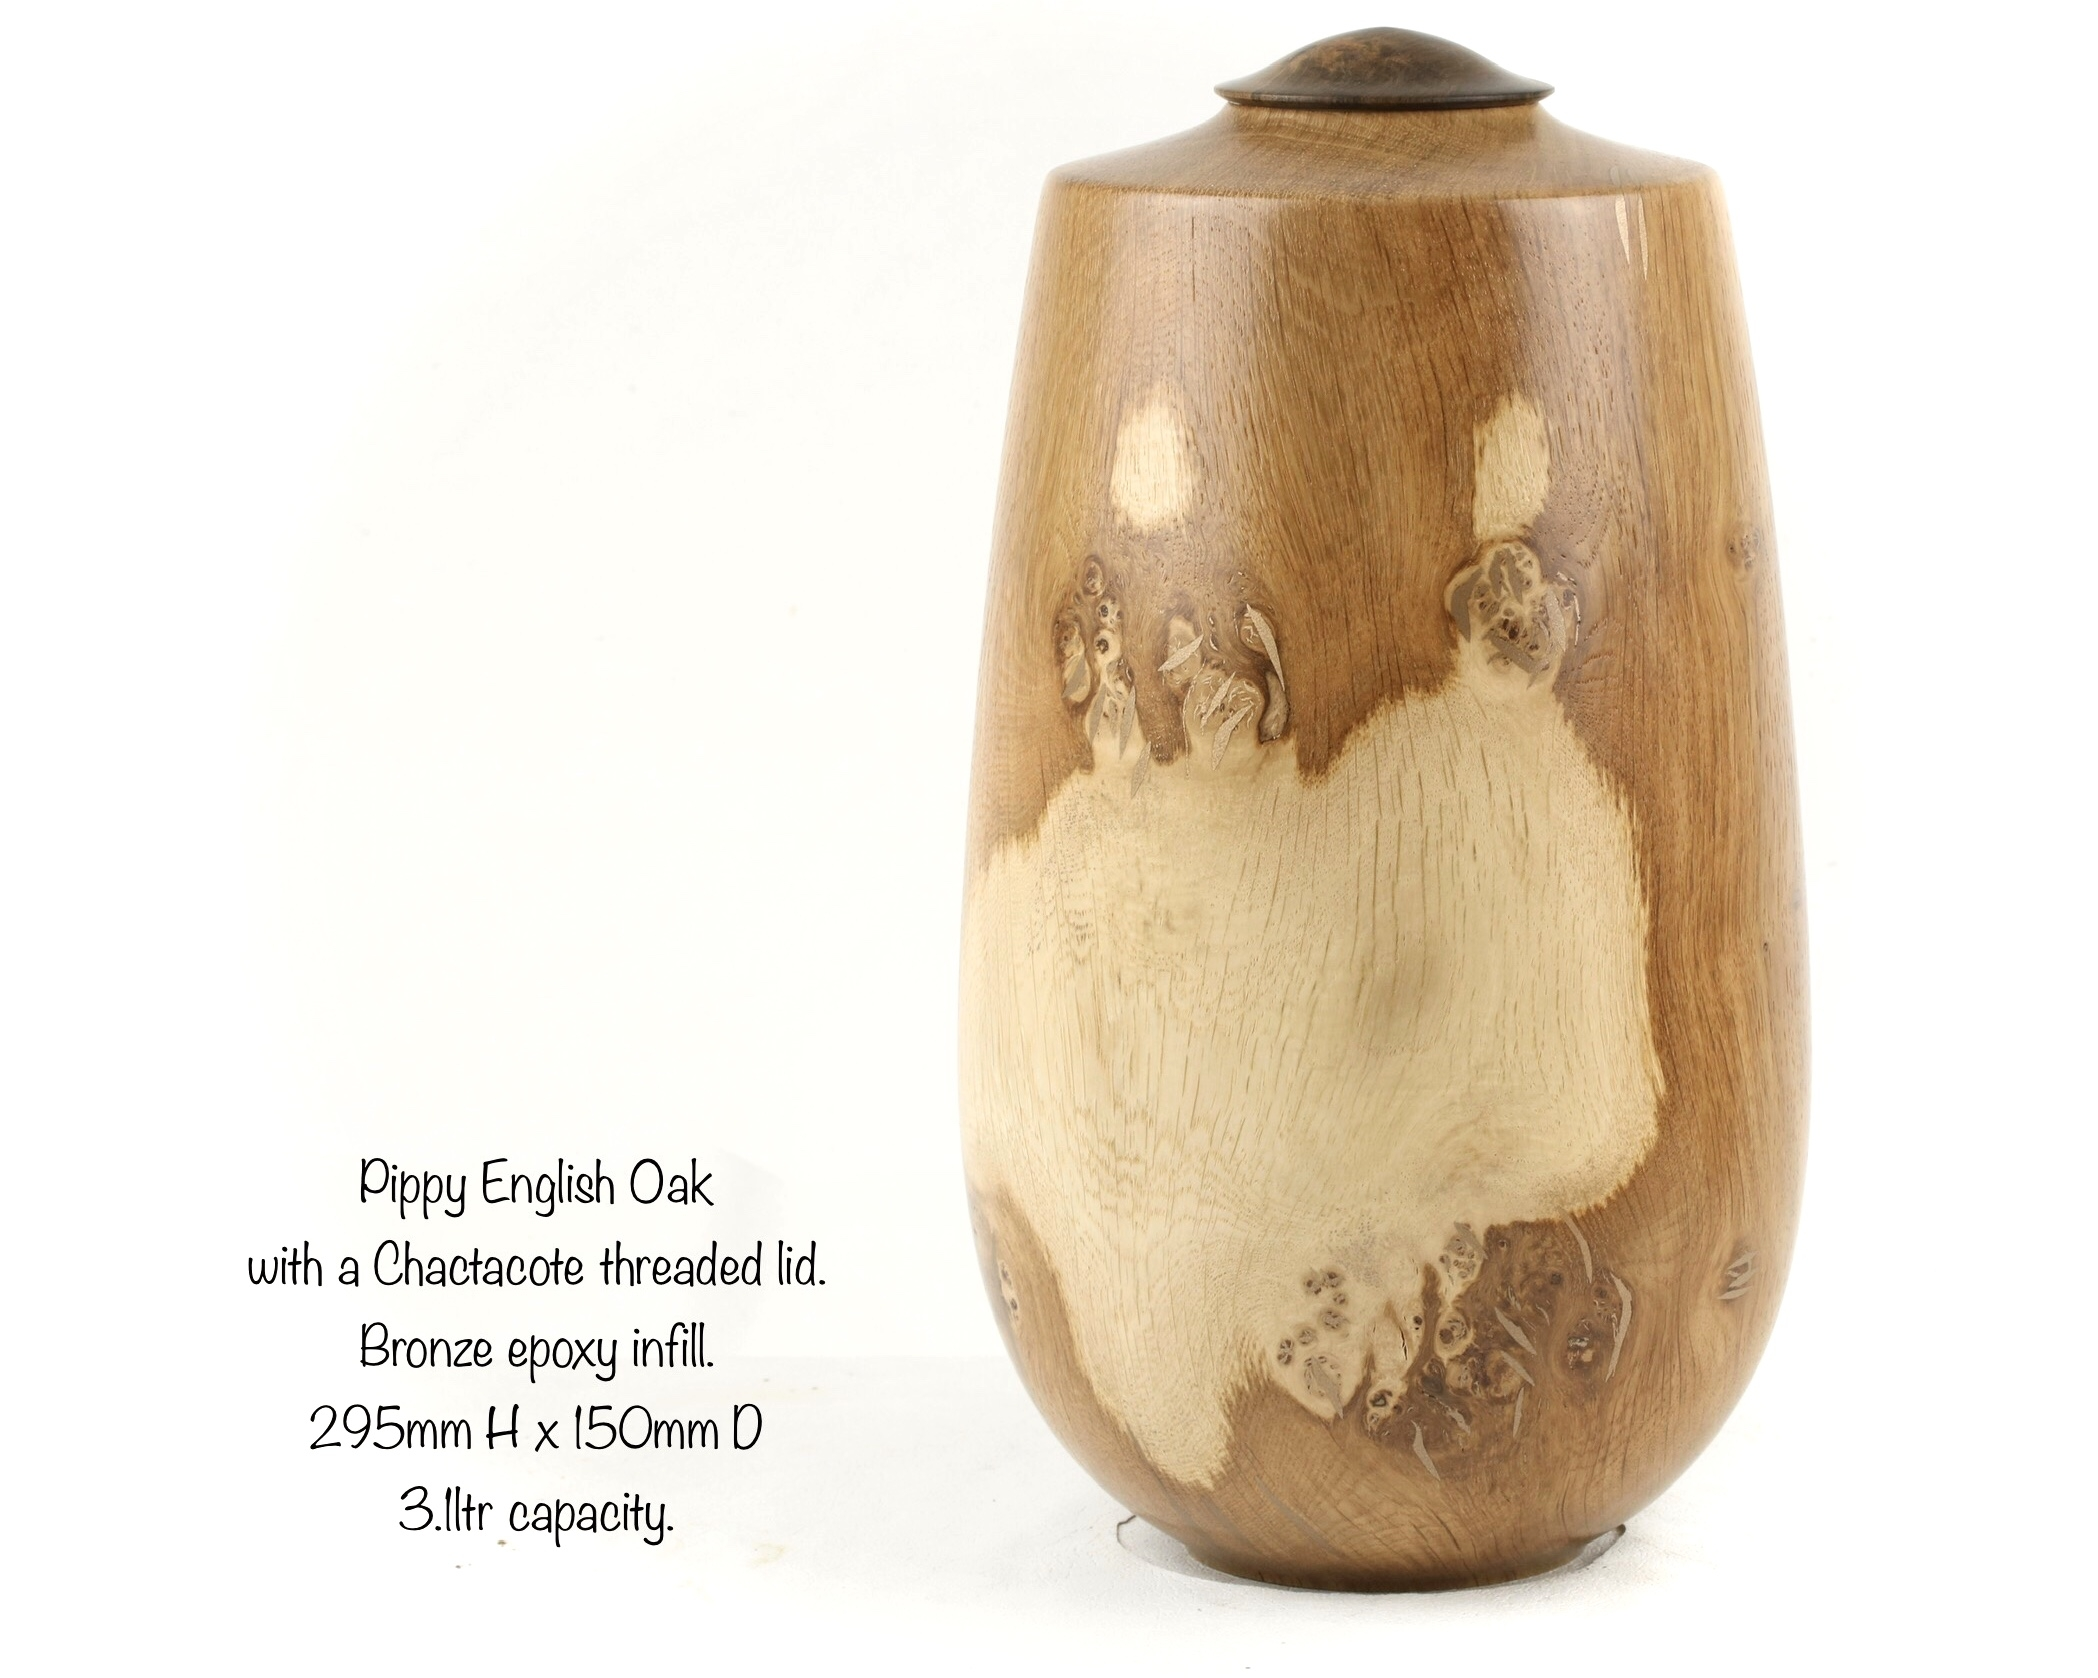 Pippy English Oak Single Urn